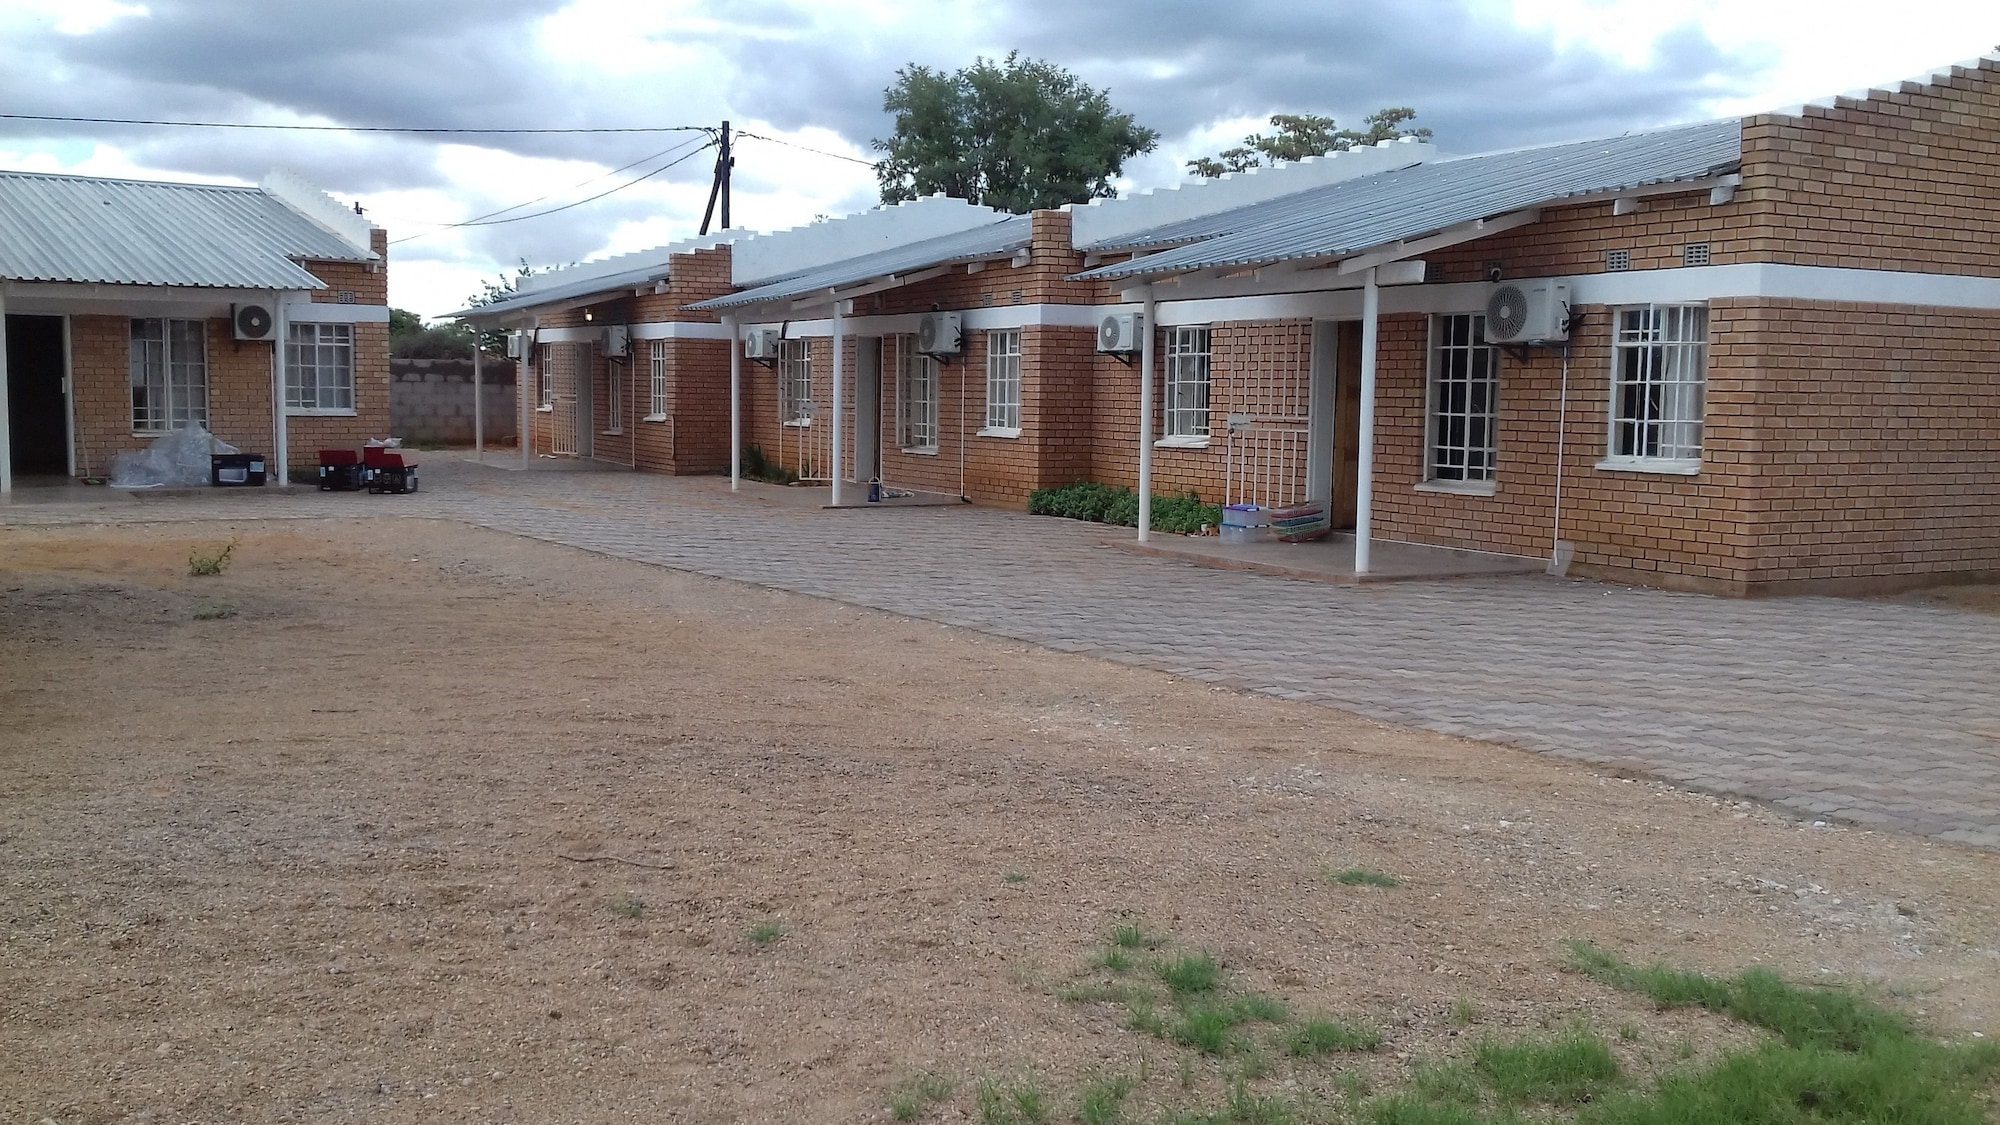 Haithoms Self Catering Palapye, Palapye